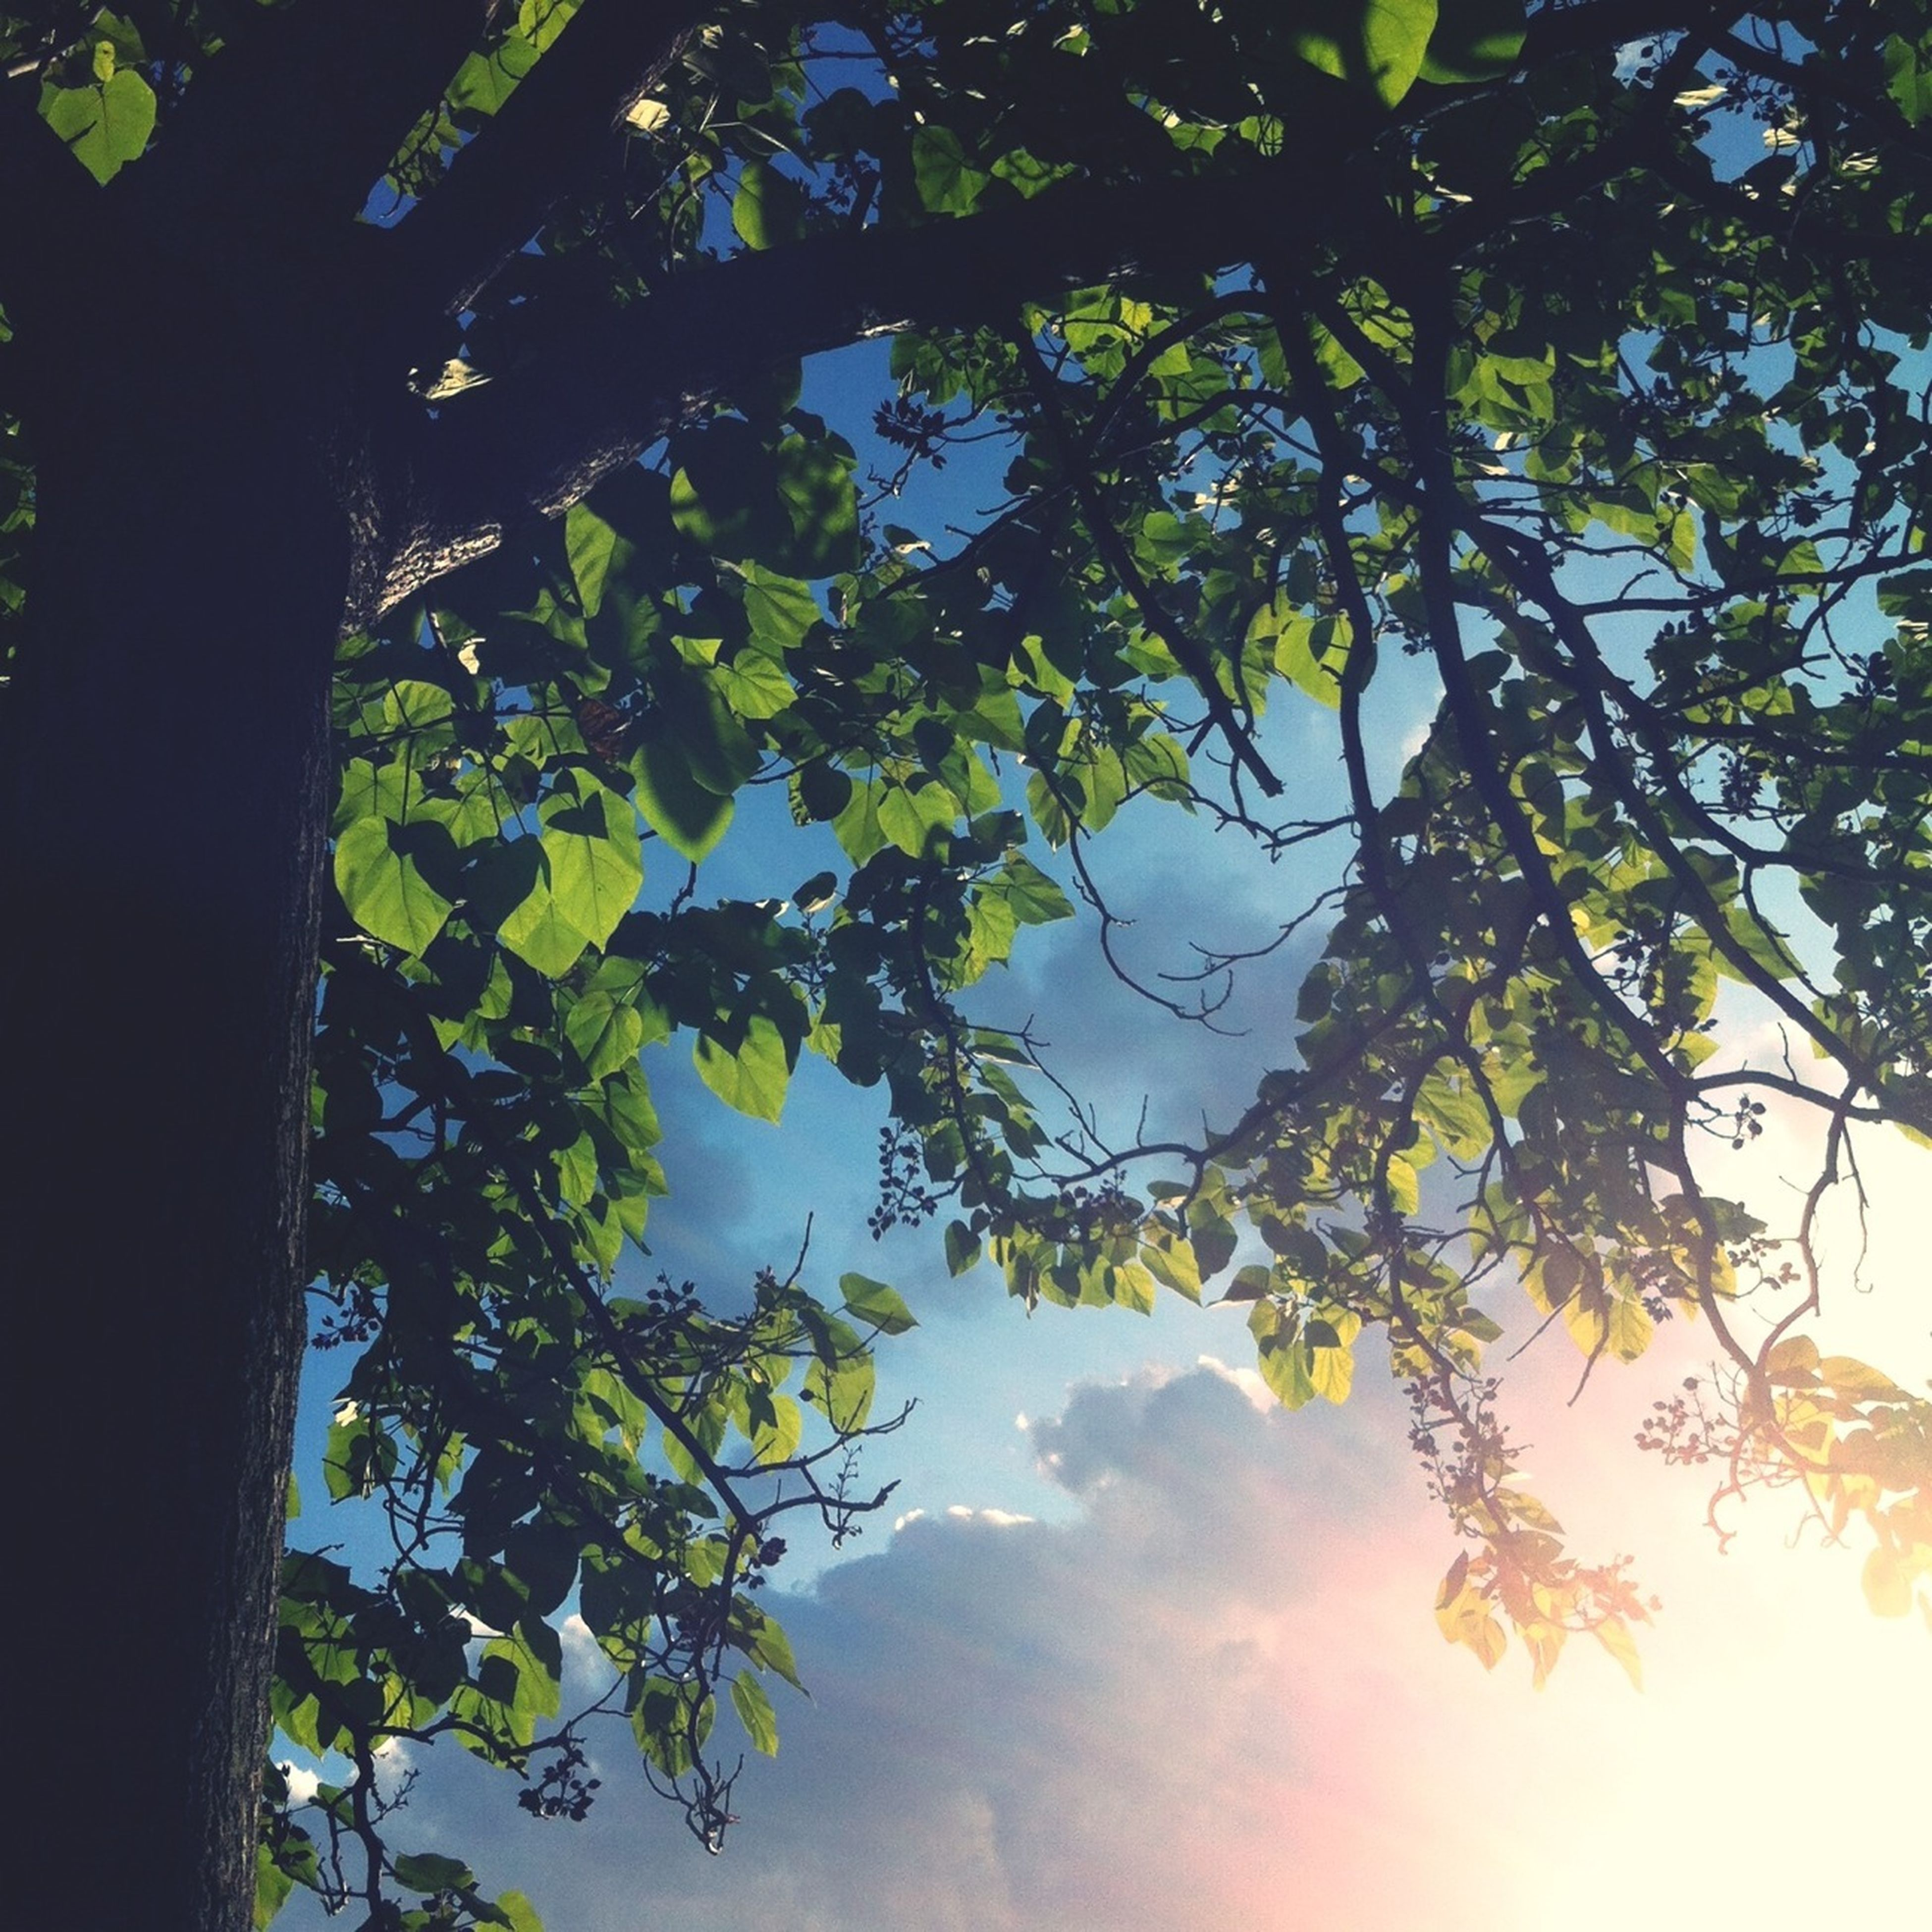 tree, low angle view, branch, growth, nature, tranquility, beauty in nature, leaf, sky, sunlight, scenics, no people, outdoors, silhouette, tranquil scene, day, tree trunk, sun, green color, clear sky